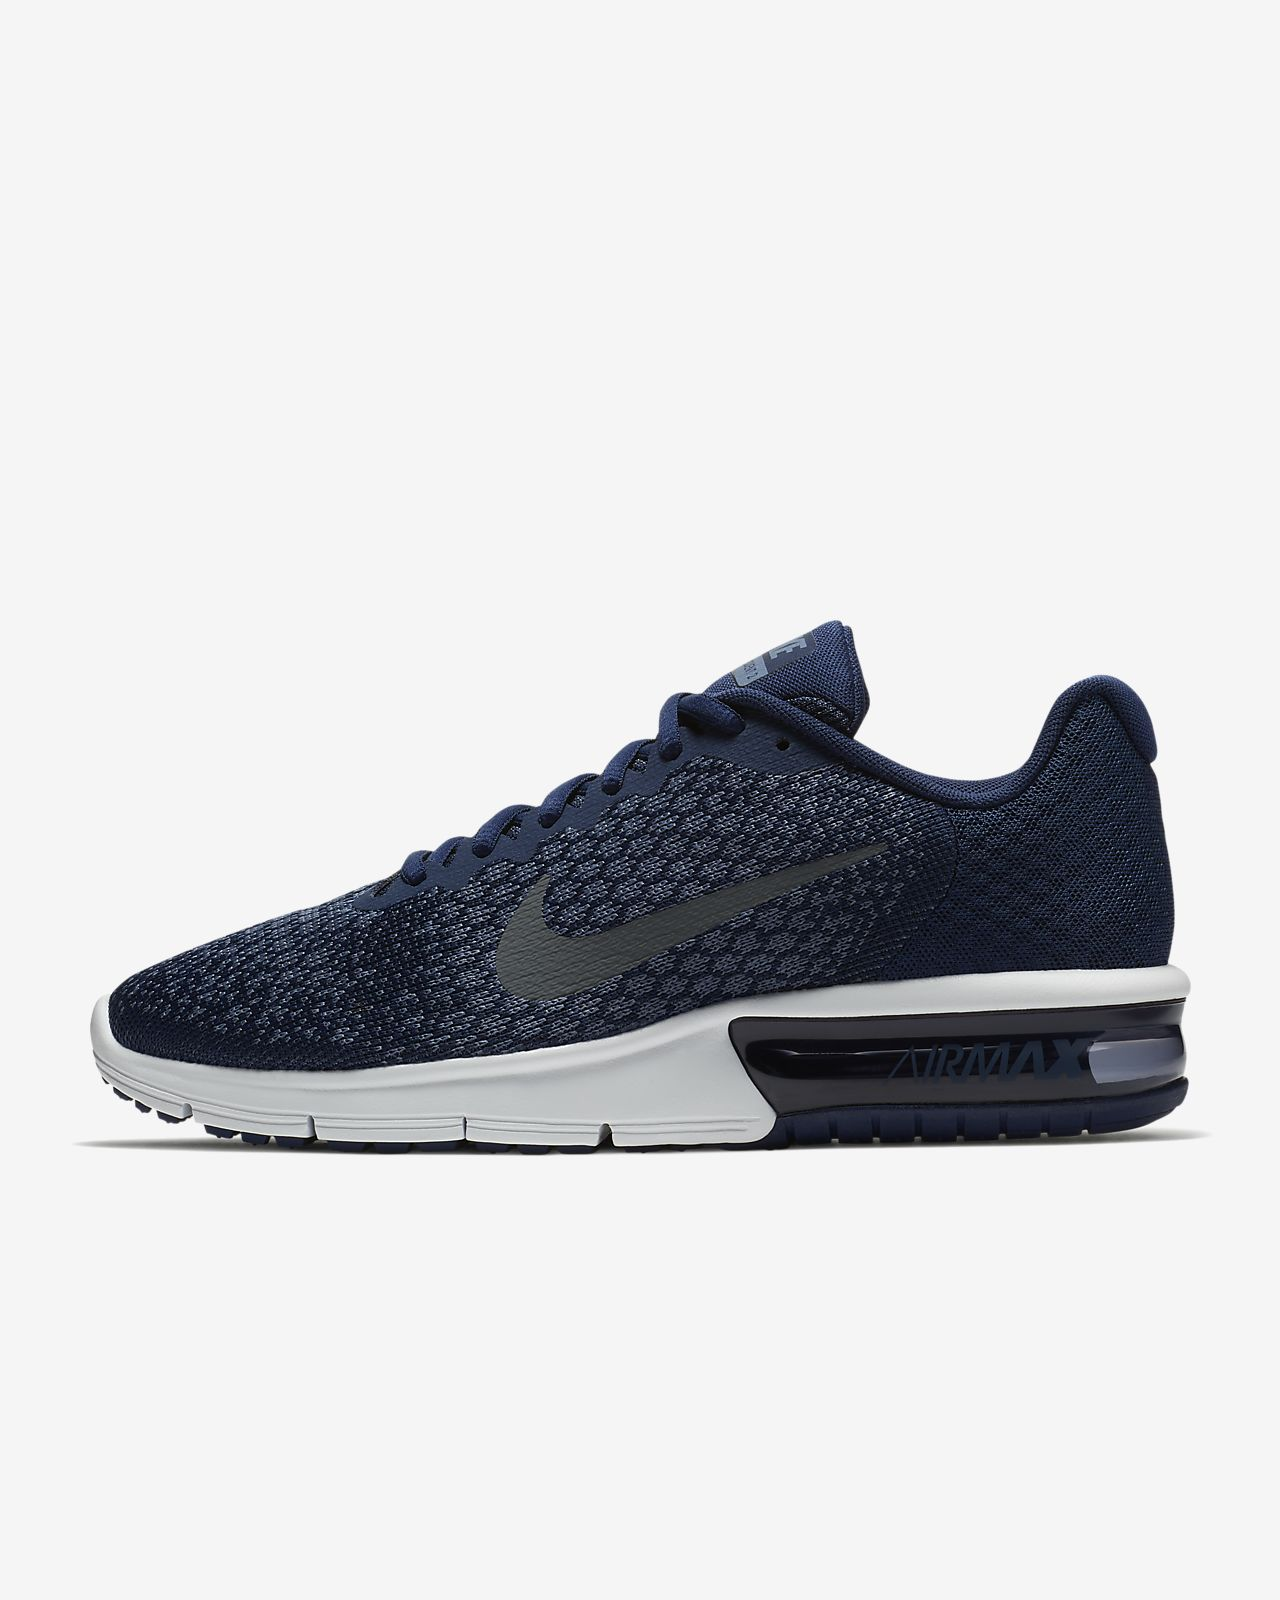 best loved 43f0f 38226 ... Chaussure Nike Air Max Sequent 2 pour Homme